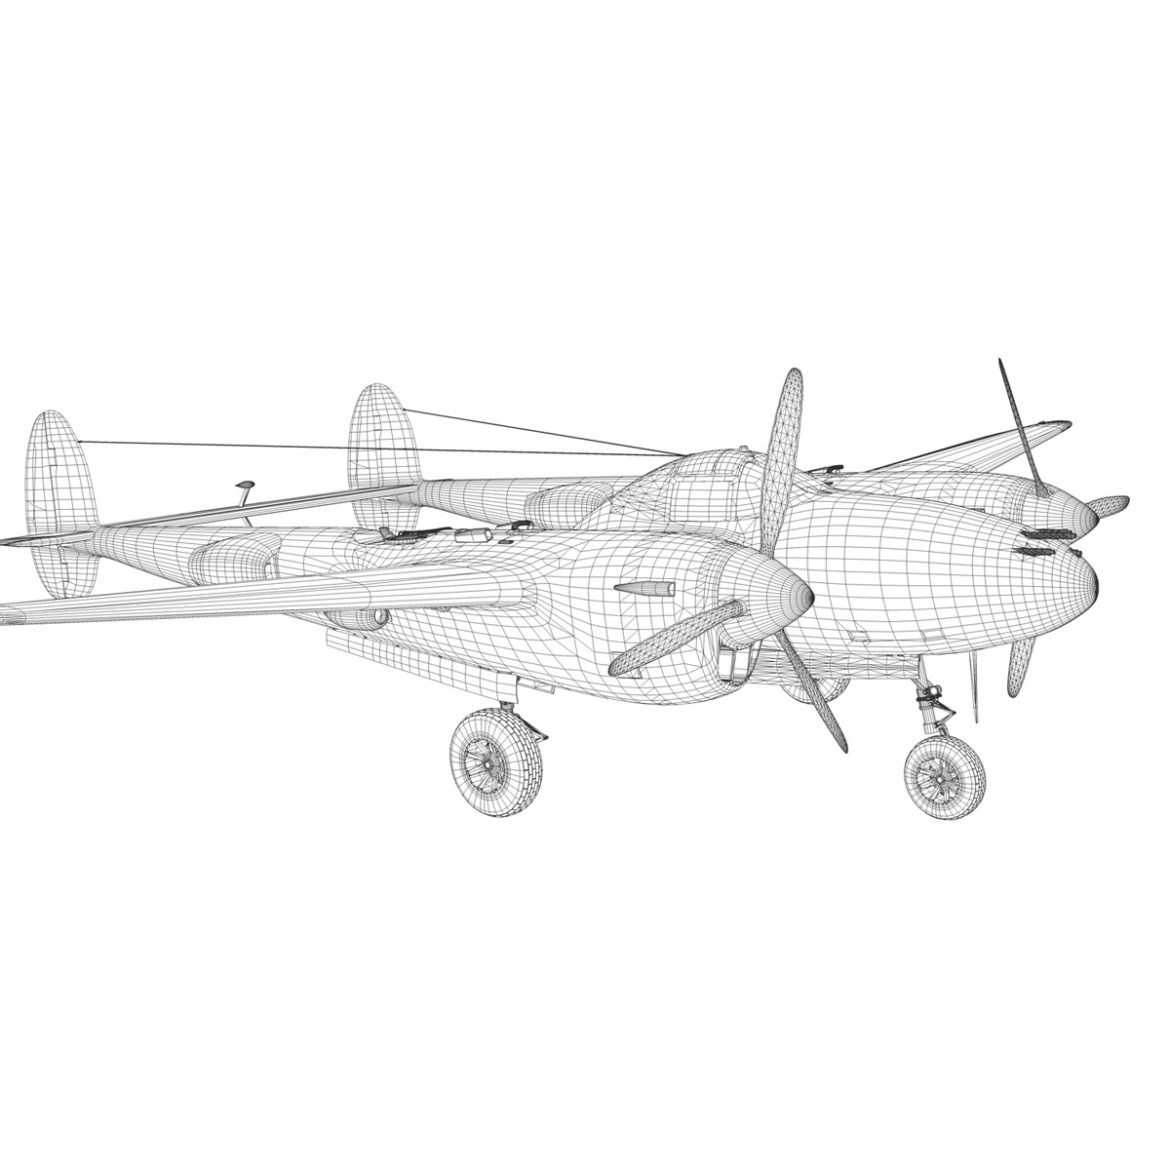 lockheed p-38 lightning – journeys end 3d model fbx lwo lw lws obj c4d 304445